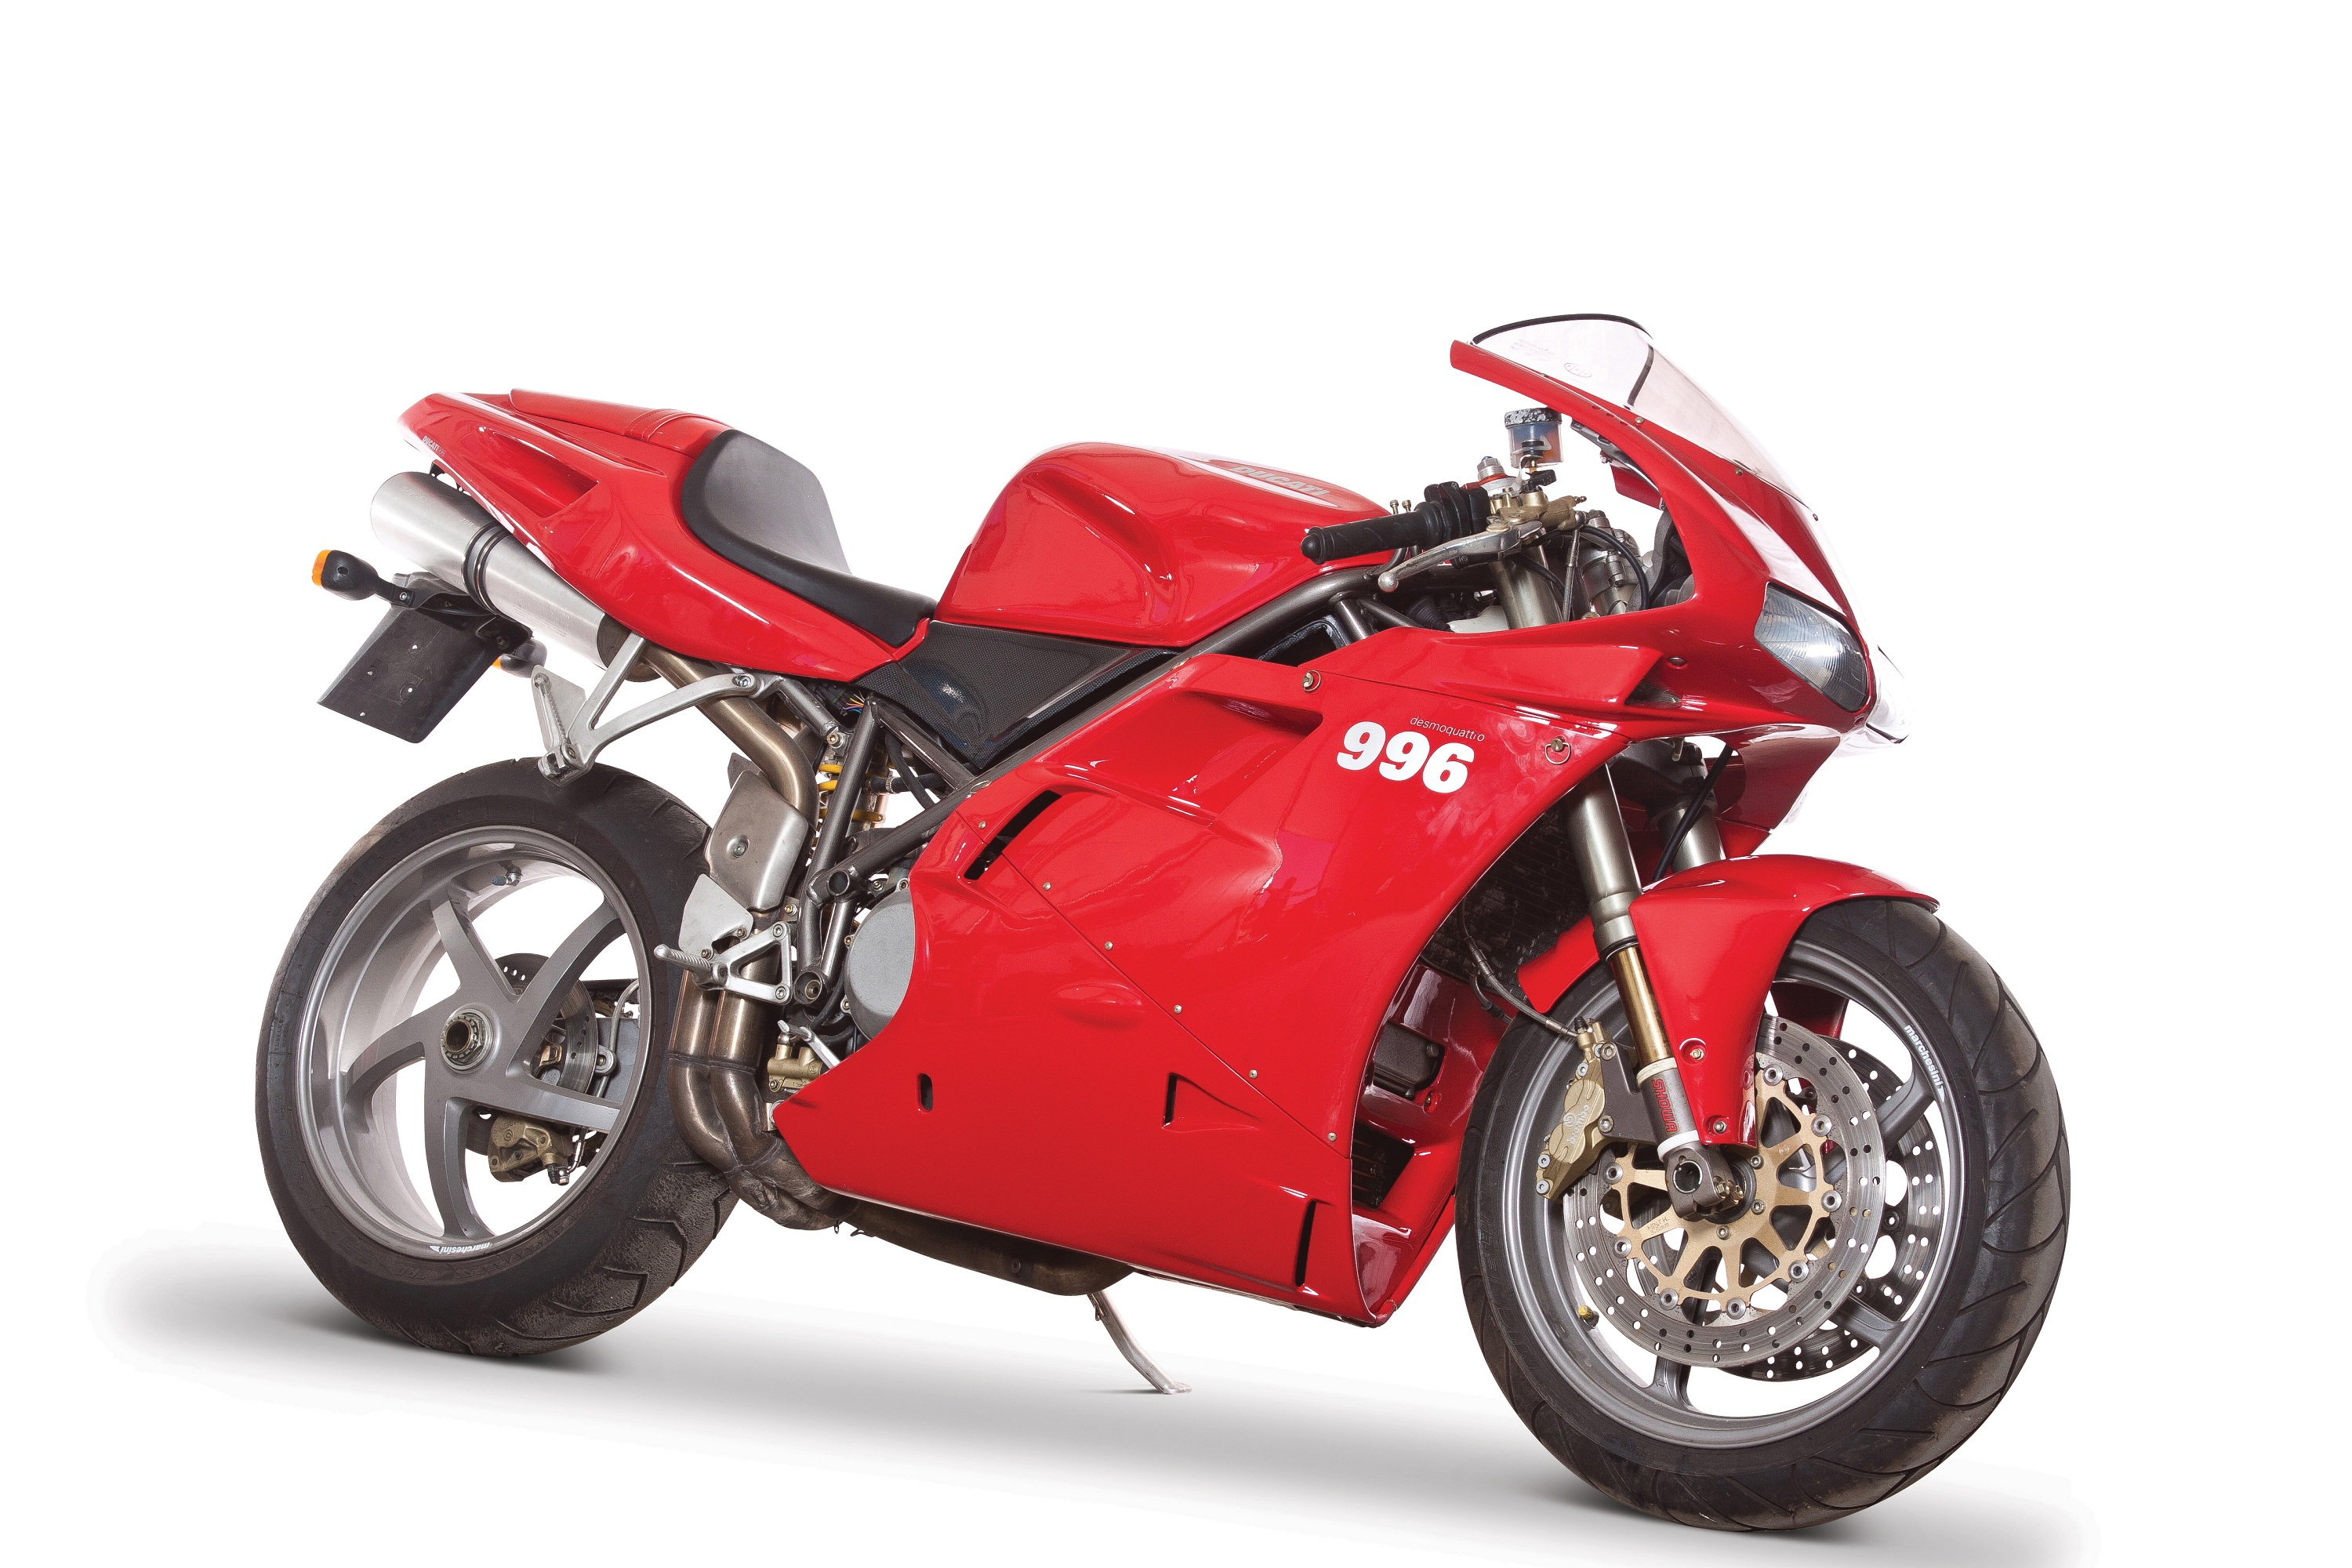 Ducati Cc Motorcycle Images